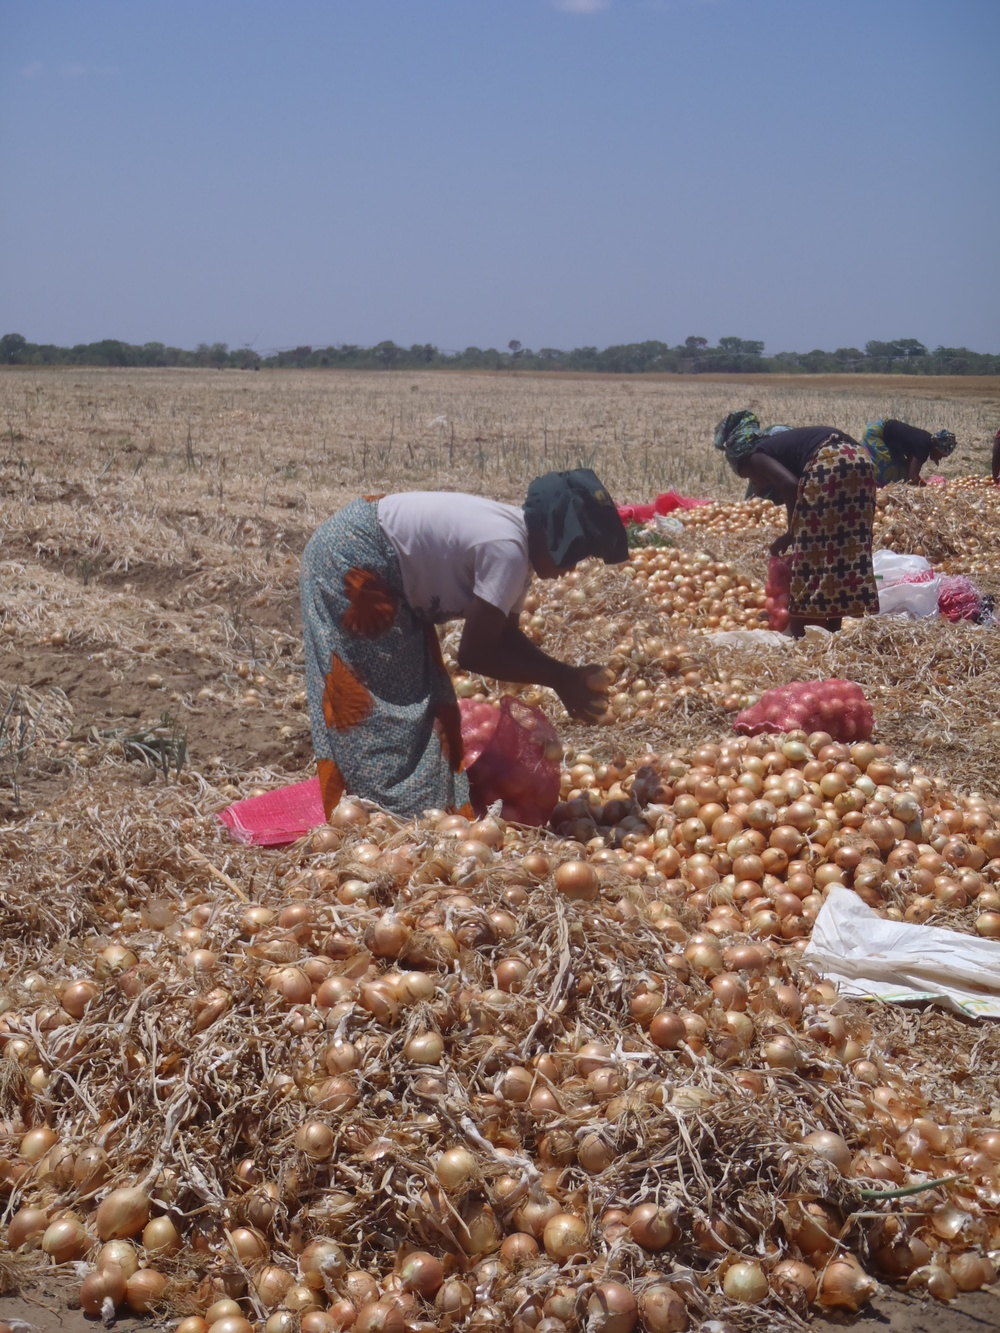 Women farm laborers harvesting onion, during a visit of a commercial farm in Zambia. Over 70% of global vegetable production in Africa is done by hand by women. Photo by Erin Schneider